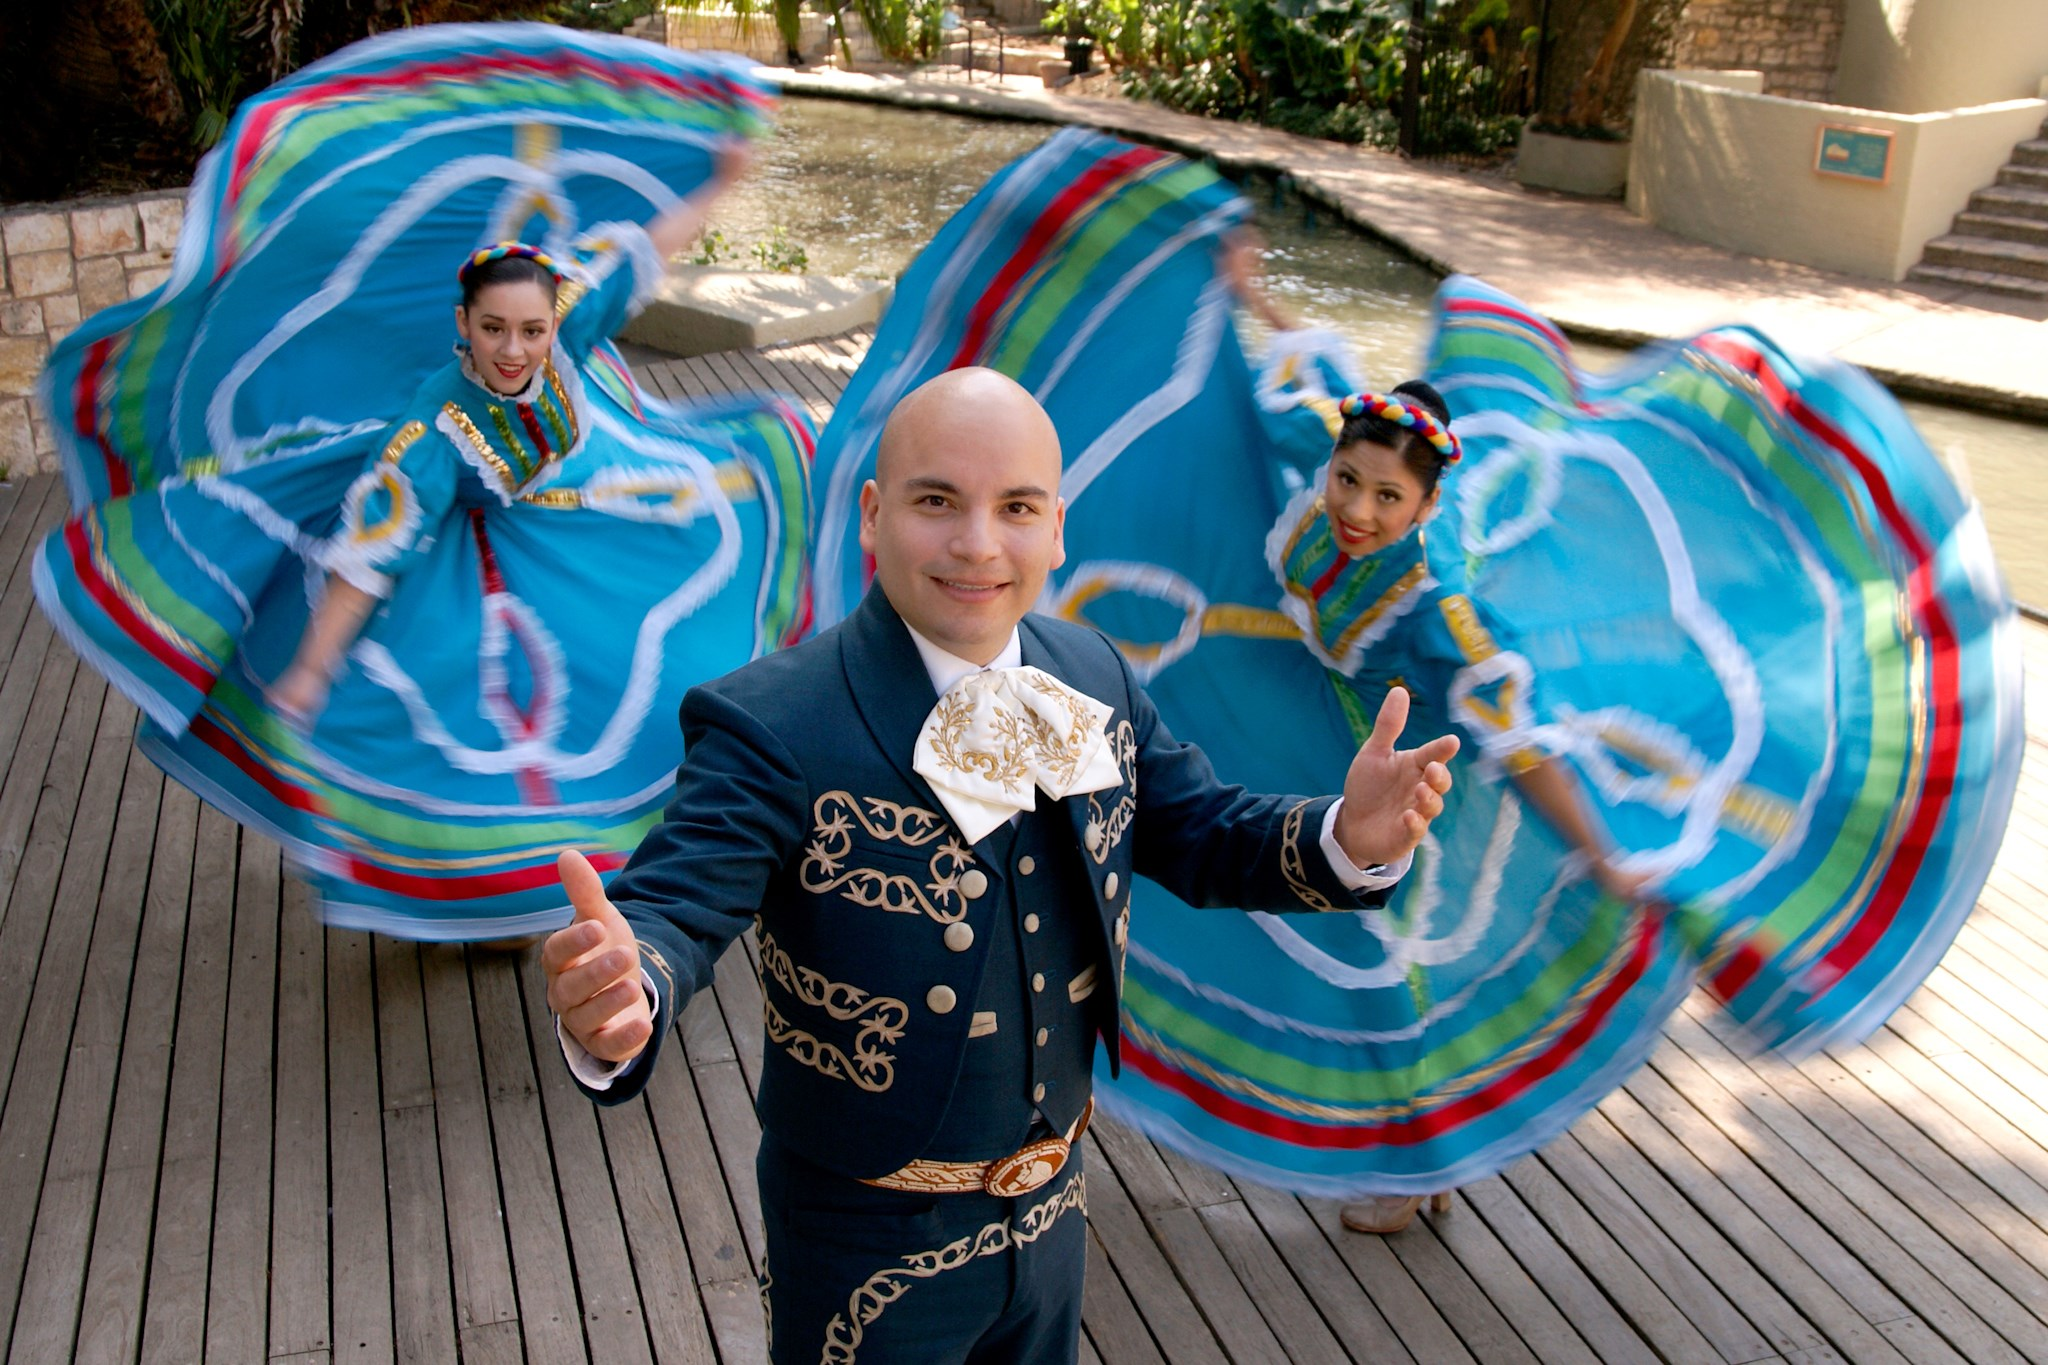 Dancers celebrate a Mexican festival in San Antonio.